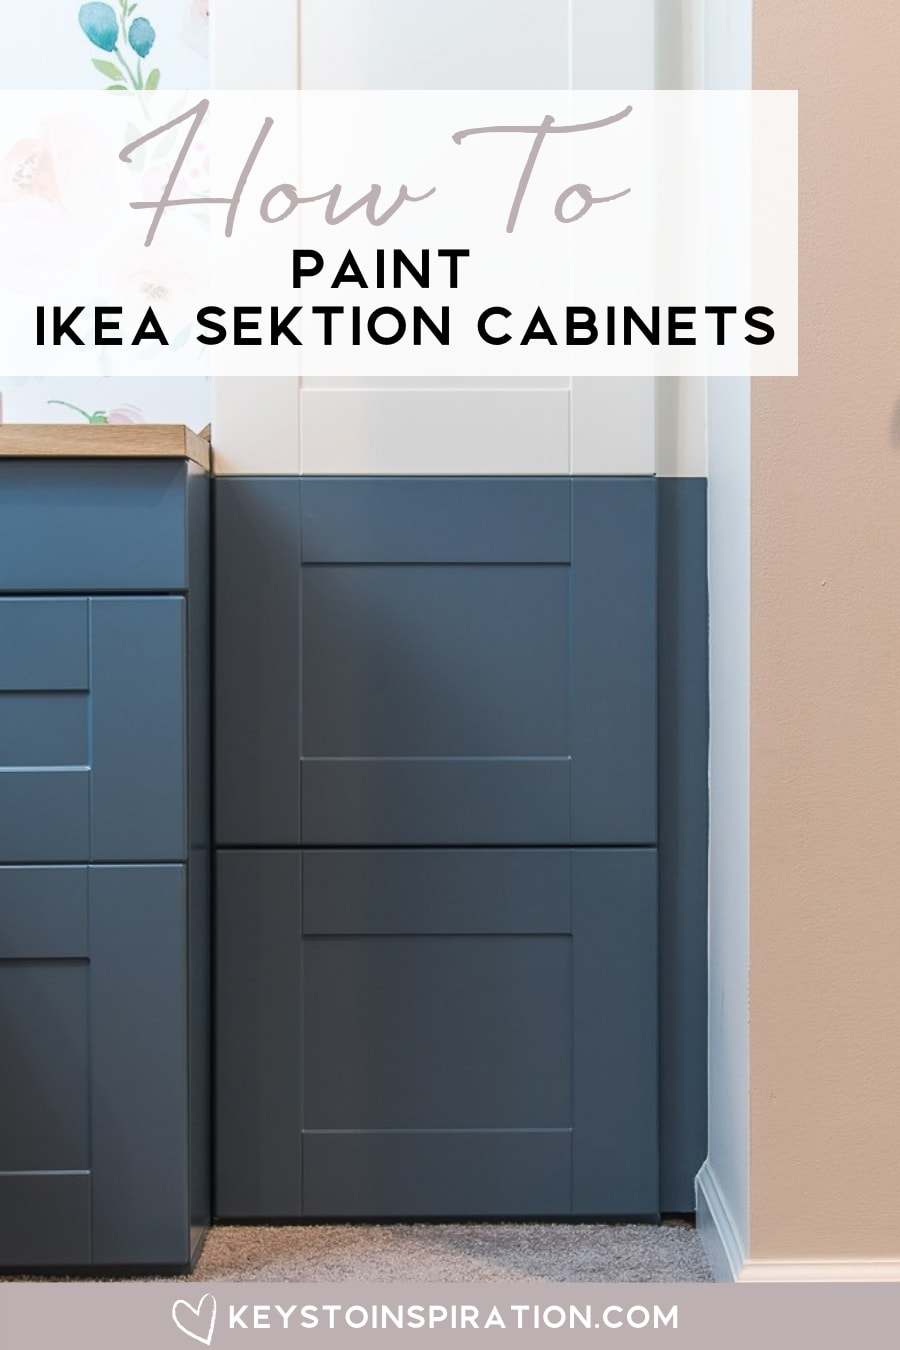 How to Paint IKEA SEKTION Cabinets {One Room Challenge Week 9